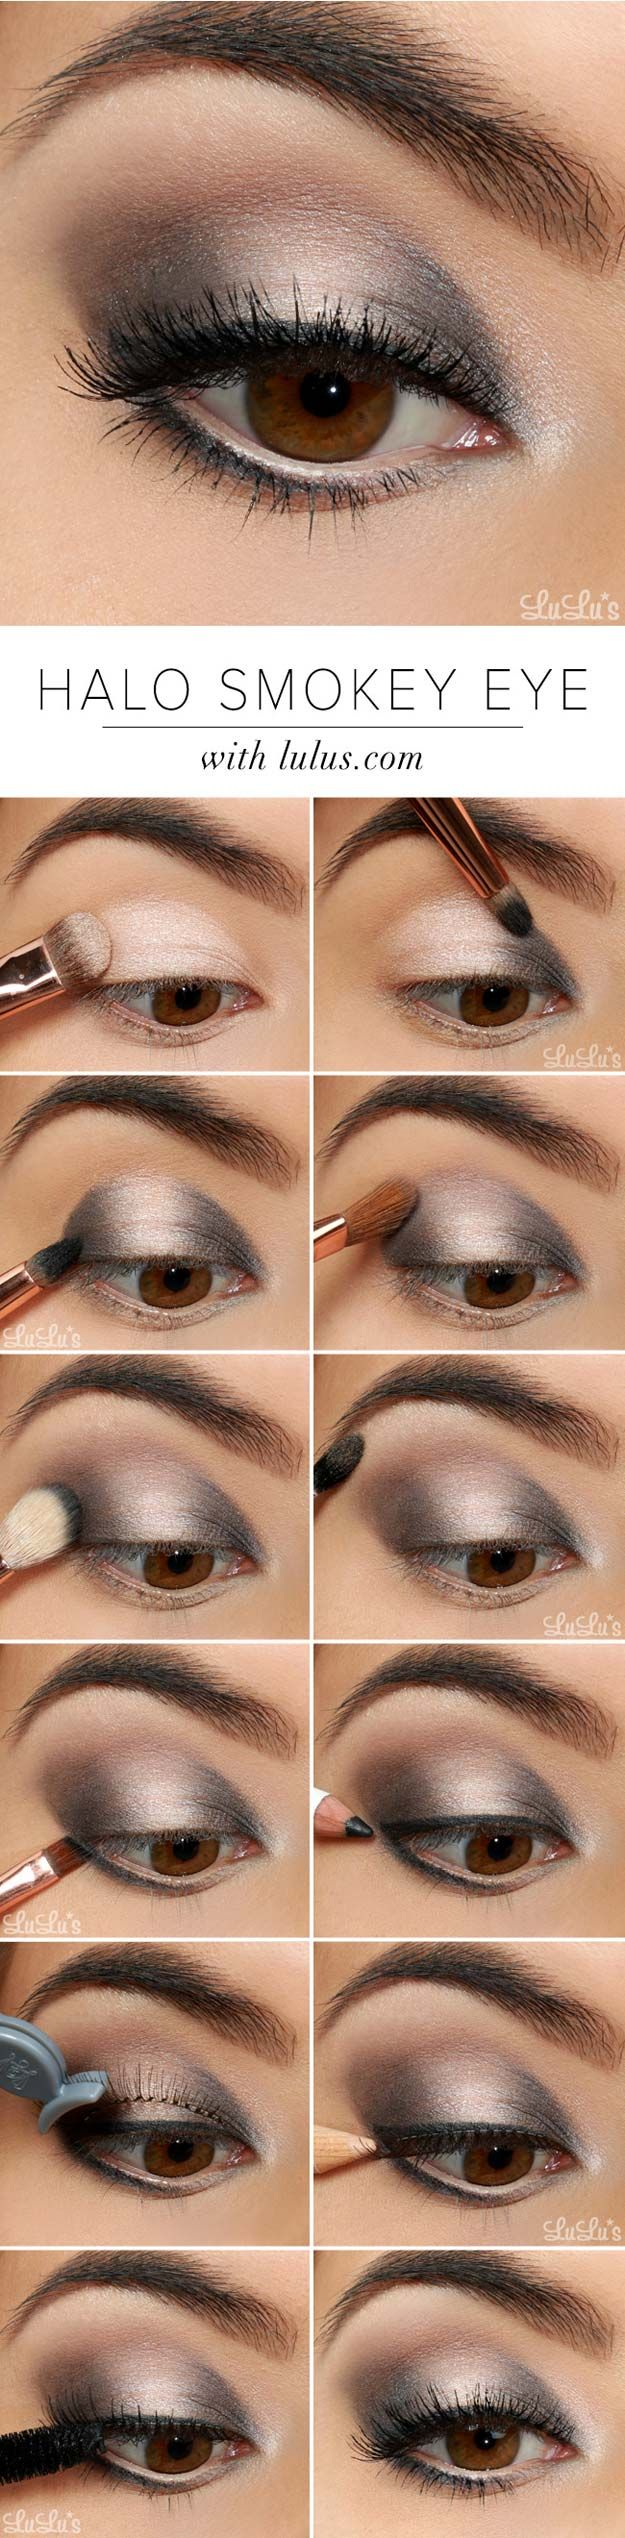 Step by Step Smokey Eye Tutorials - Halo Smokey Eye - Step by Step Tutorials on How to Apply Different Eyeshadows for Smokey Eyes - Awesome Looks for Brown, Black, and Blue Eyes, Natural Looks, and Looks for All Types of Lashes - thegoddess.com/step-by-step-smokey-eye